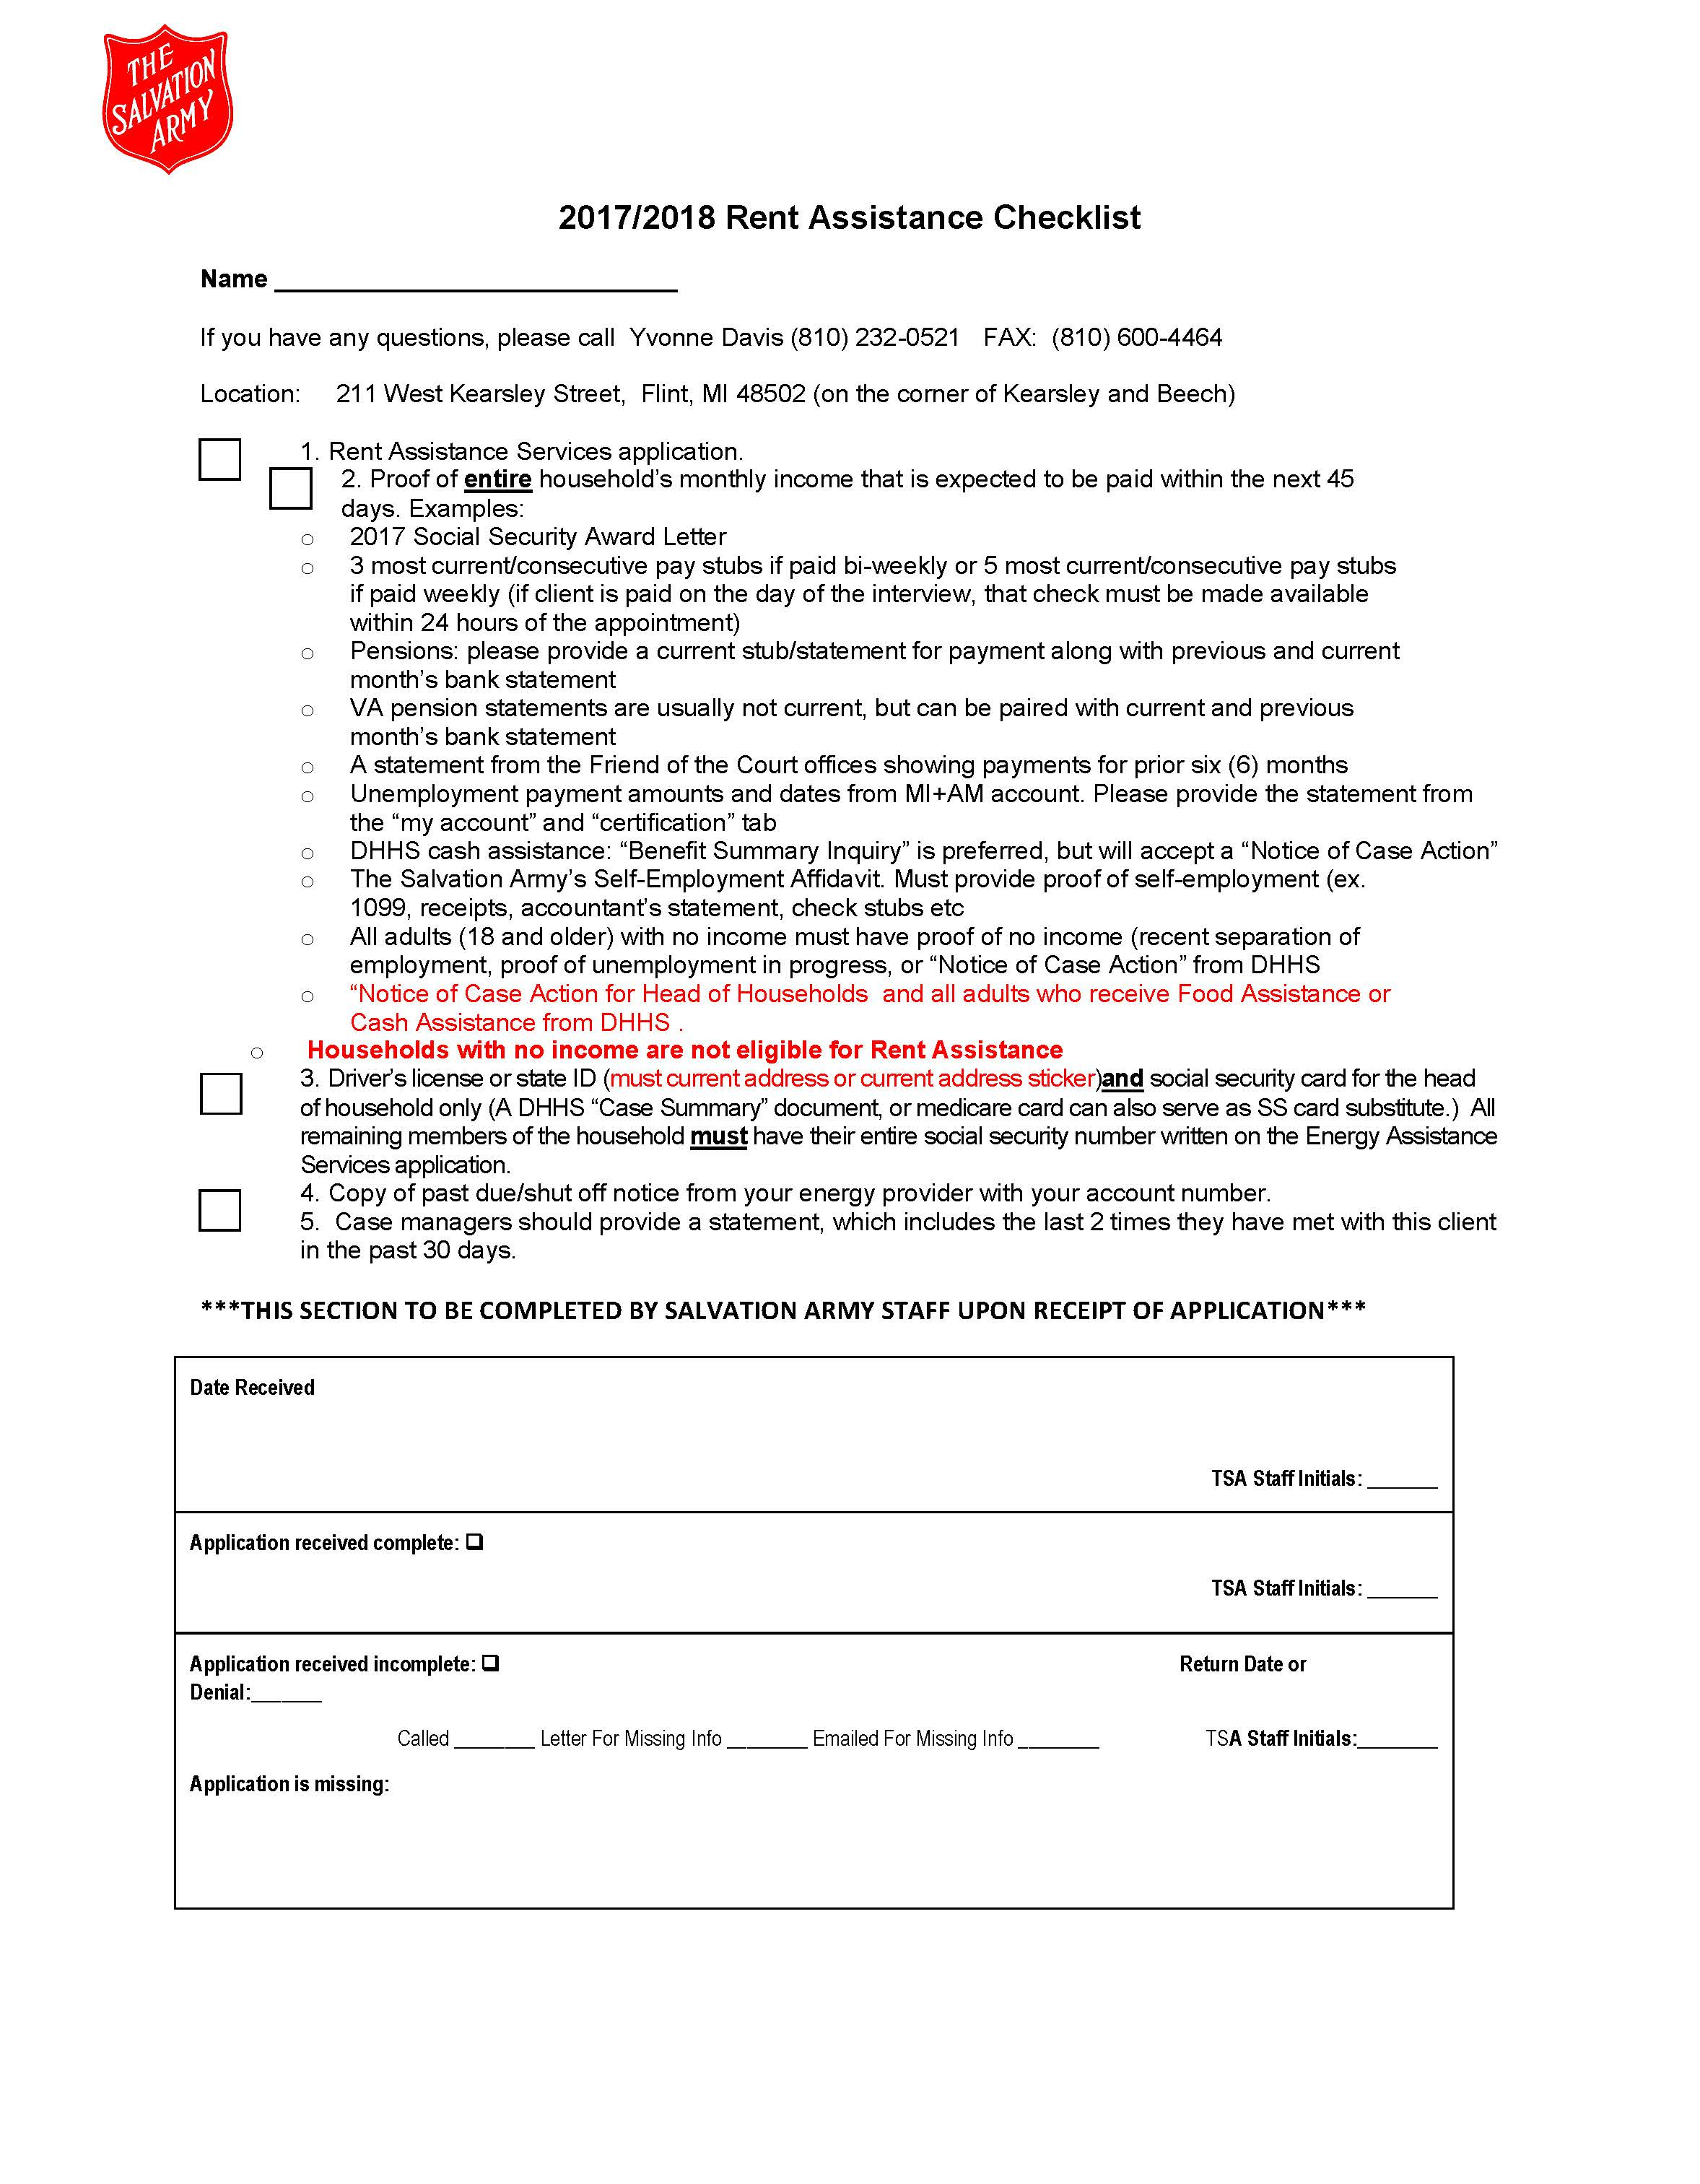 genesee county - gfhc sim referral forms